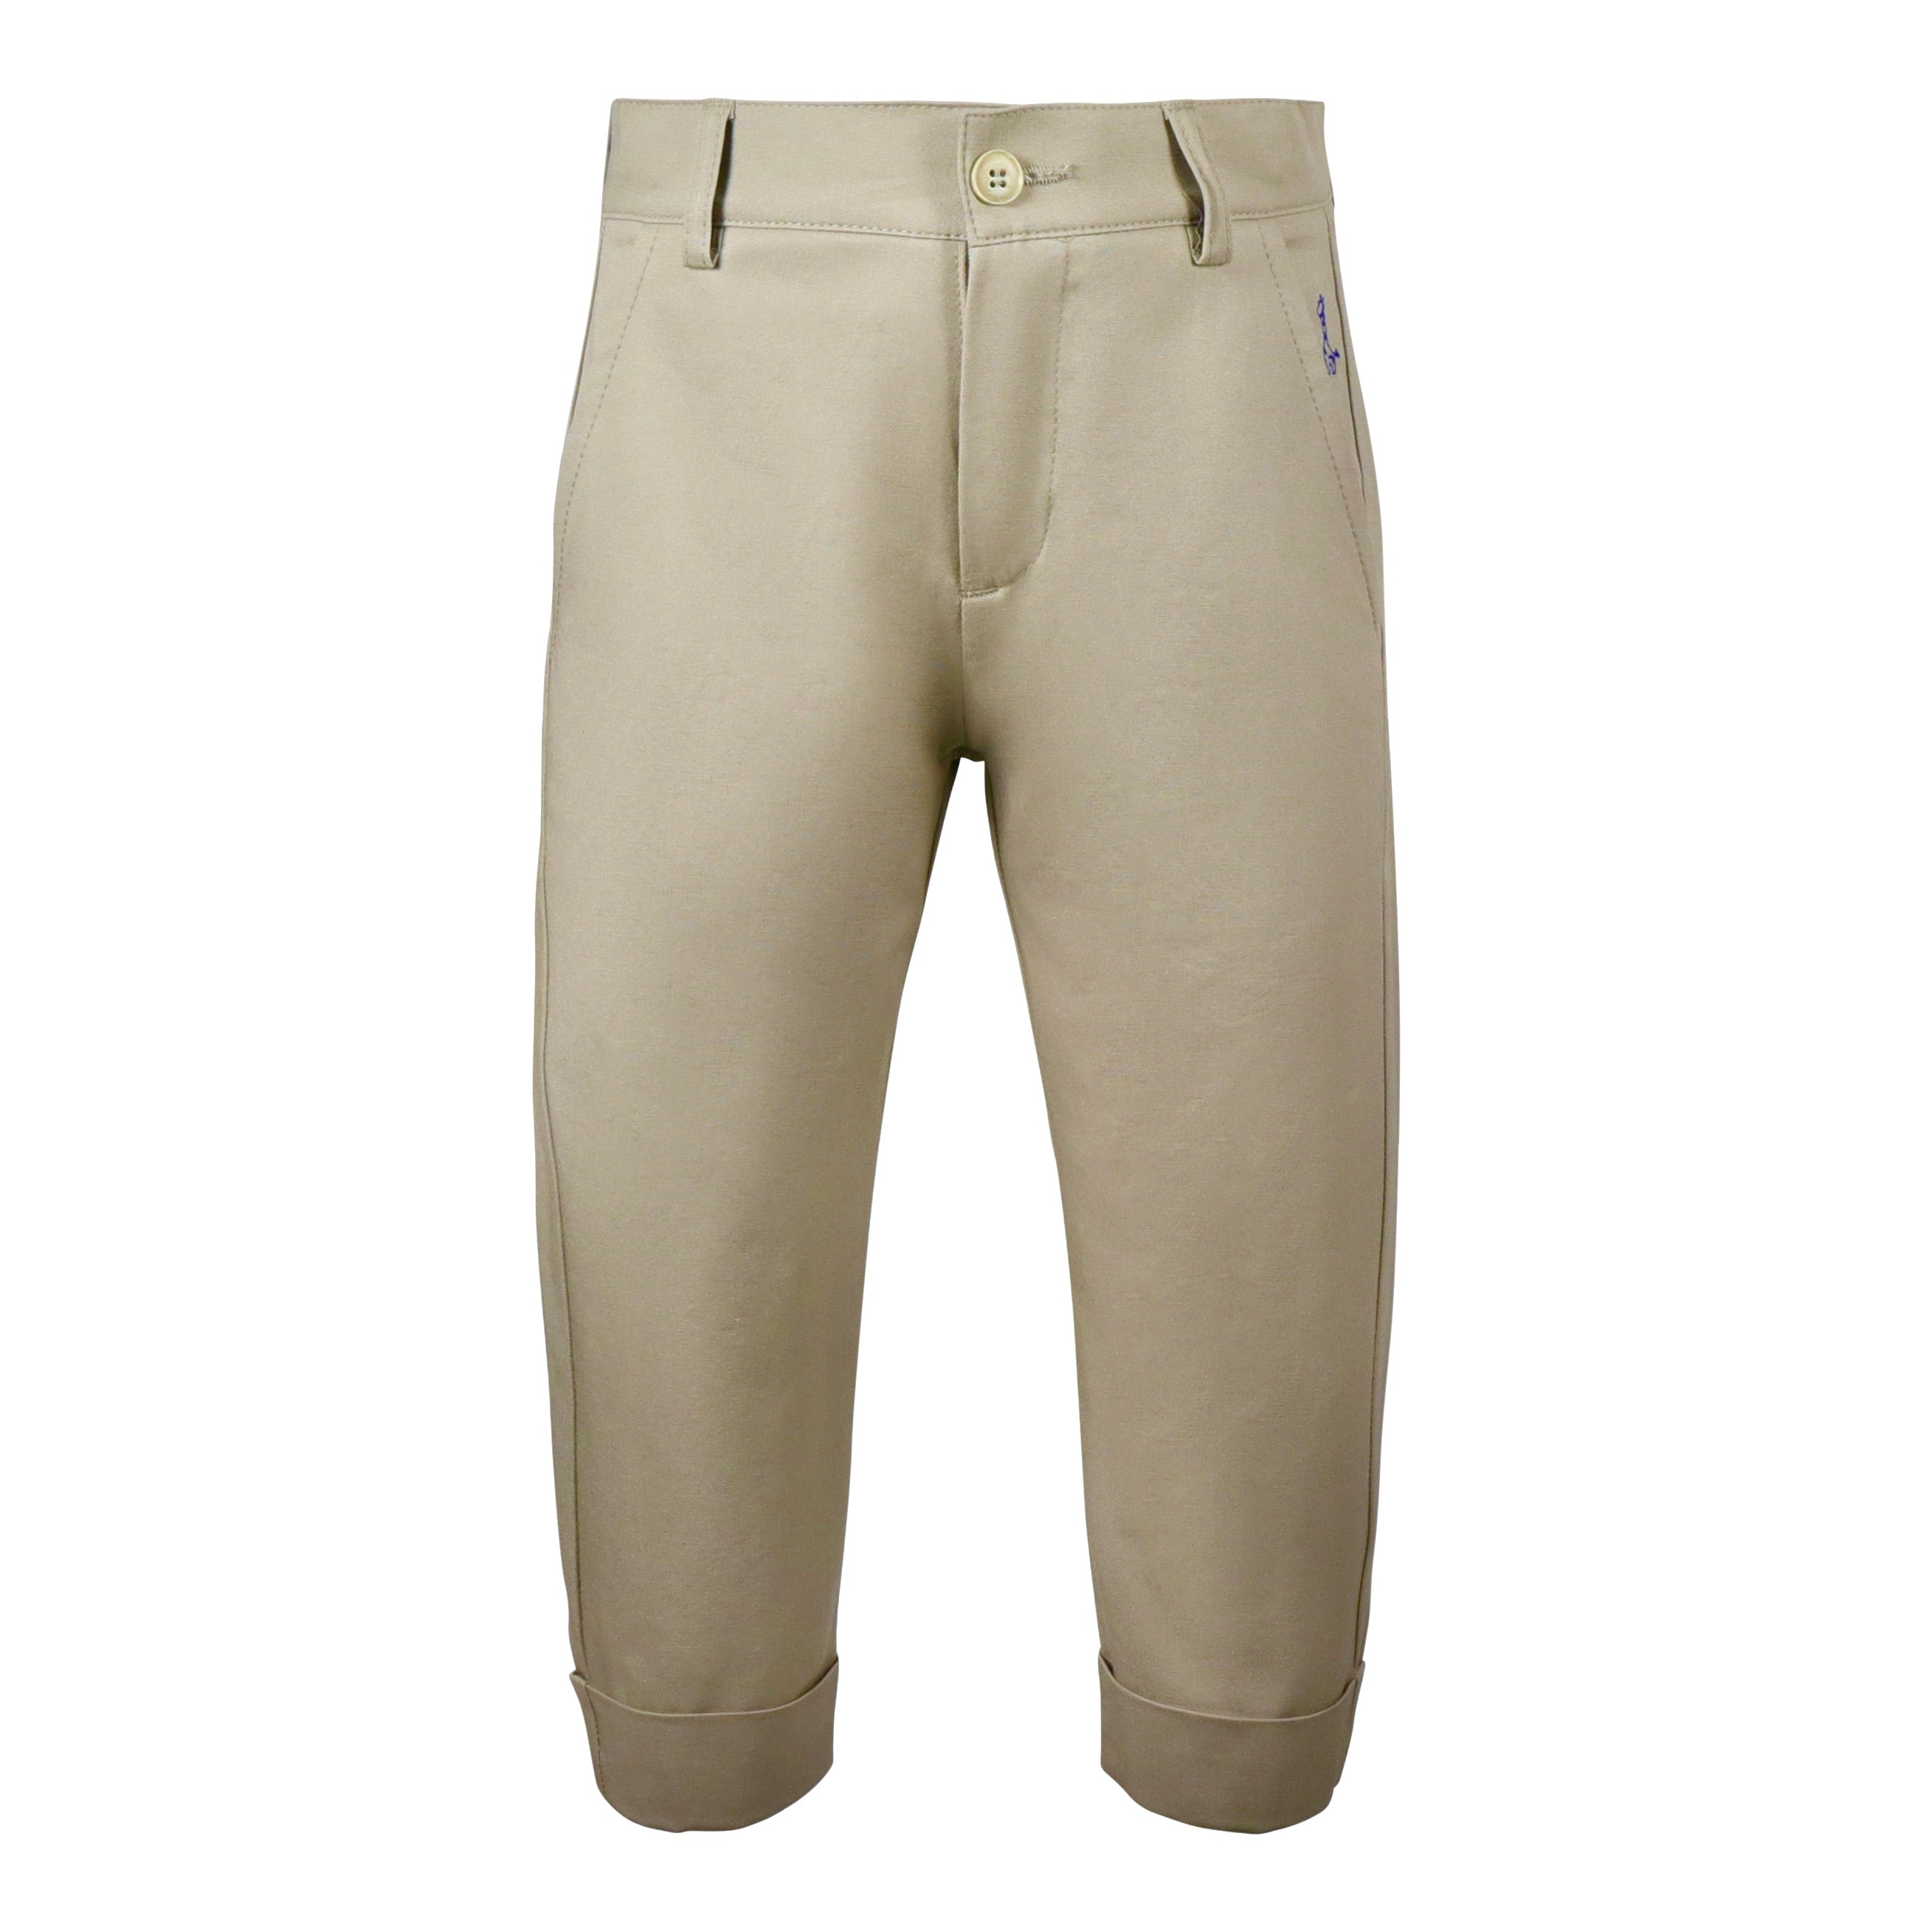 trousers in fresh dove gray cotton